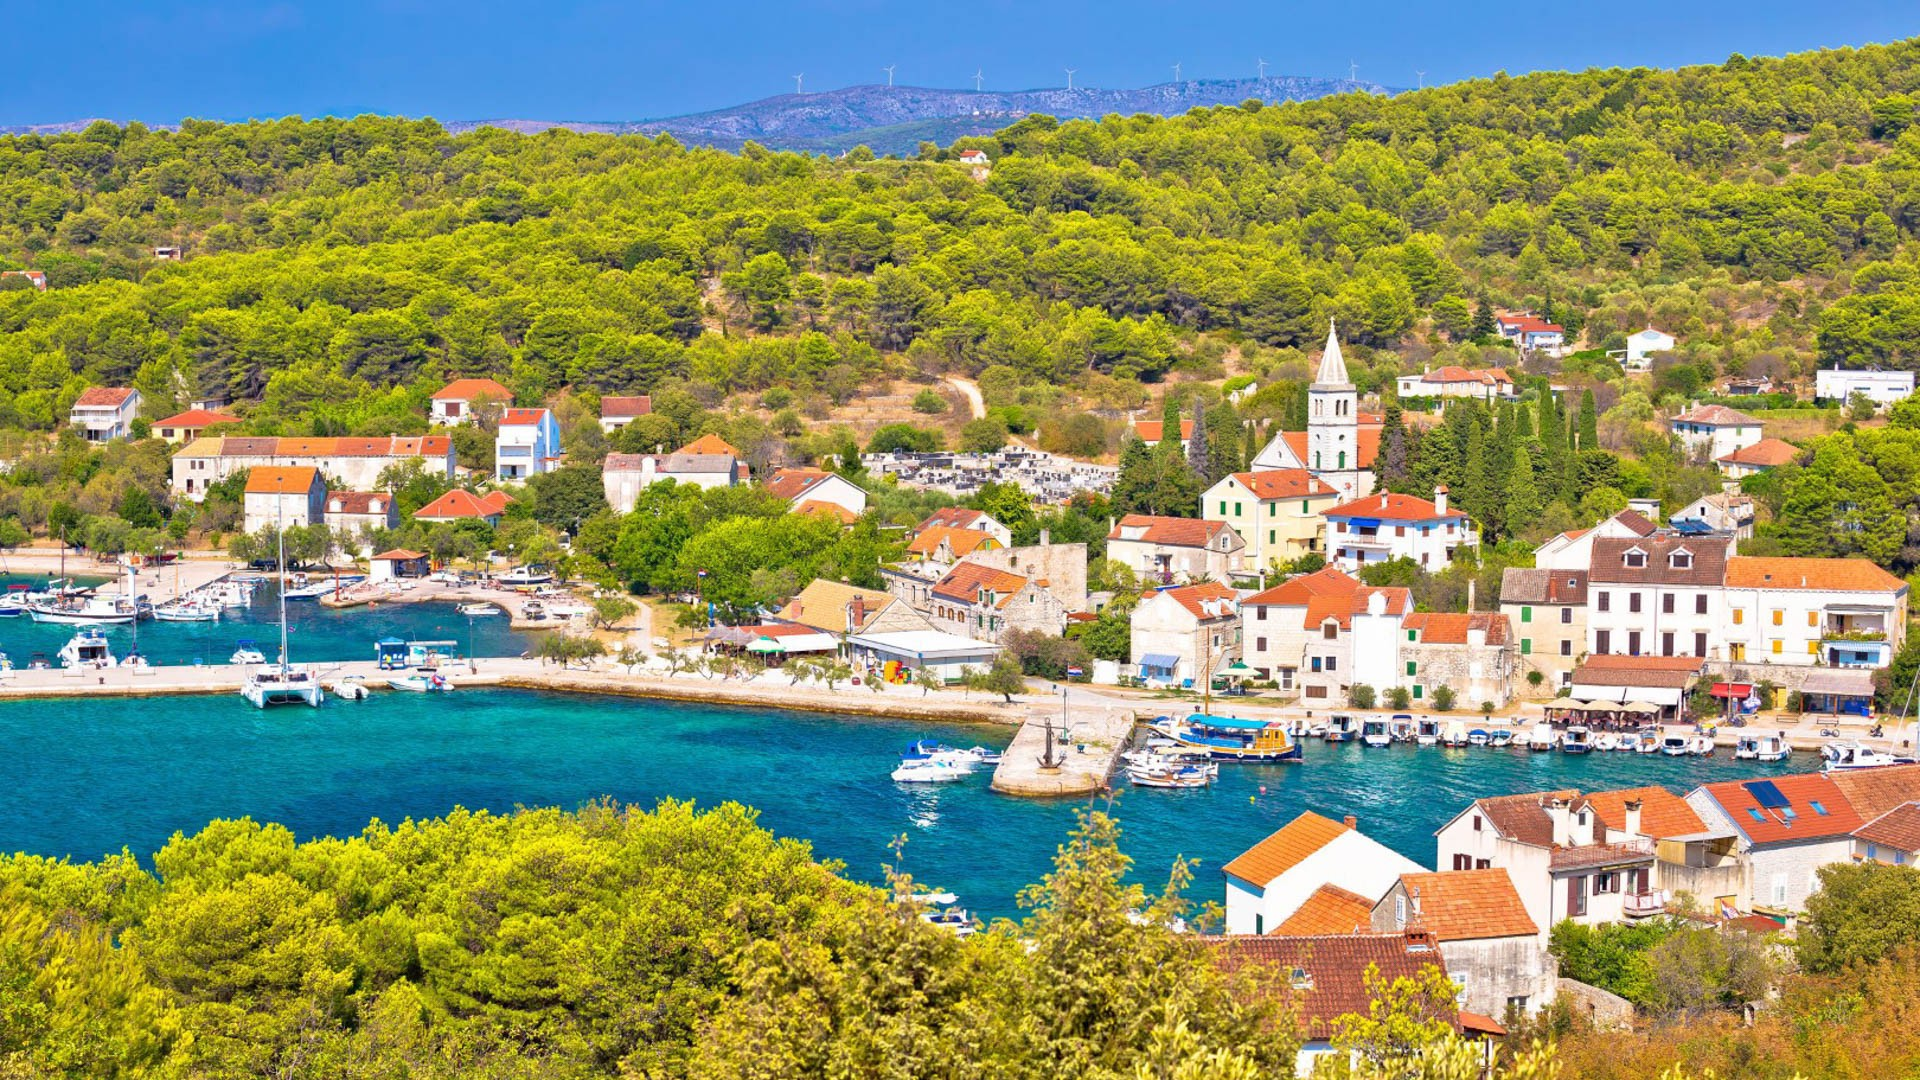 Zlarin - Adriatic Sea | Croatia Cruise Croatia Cruise